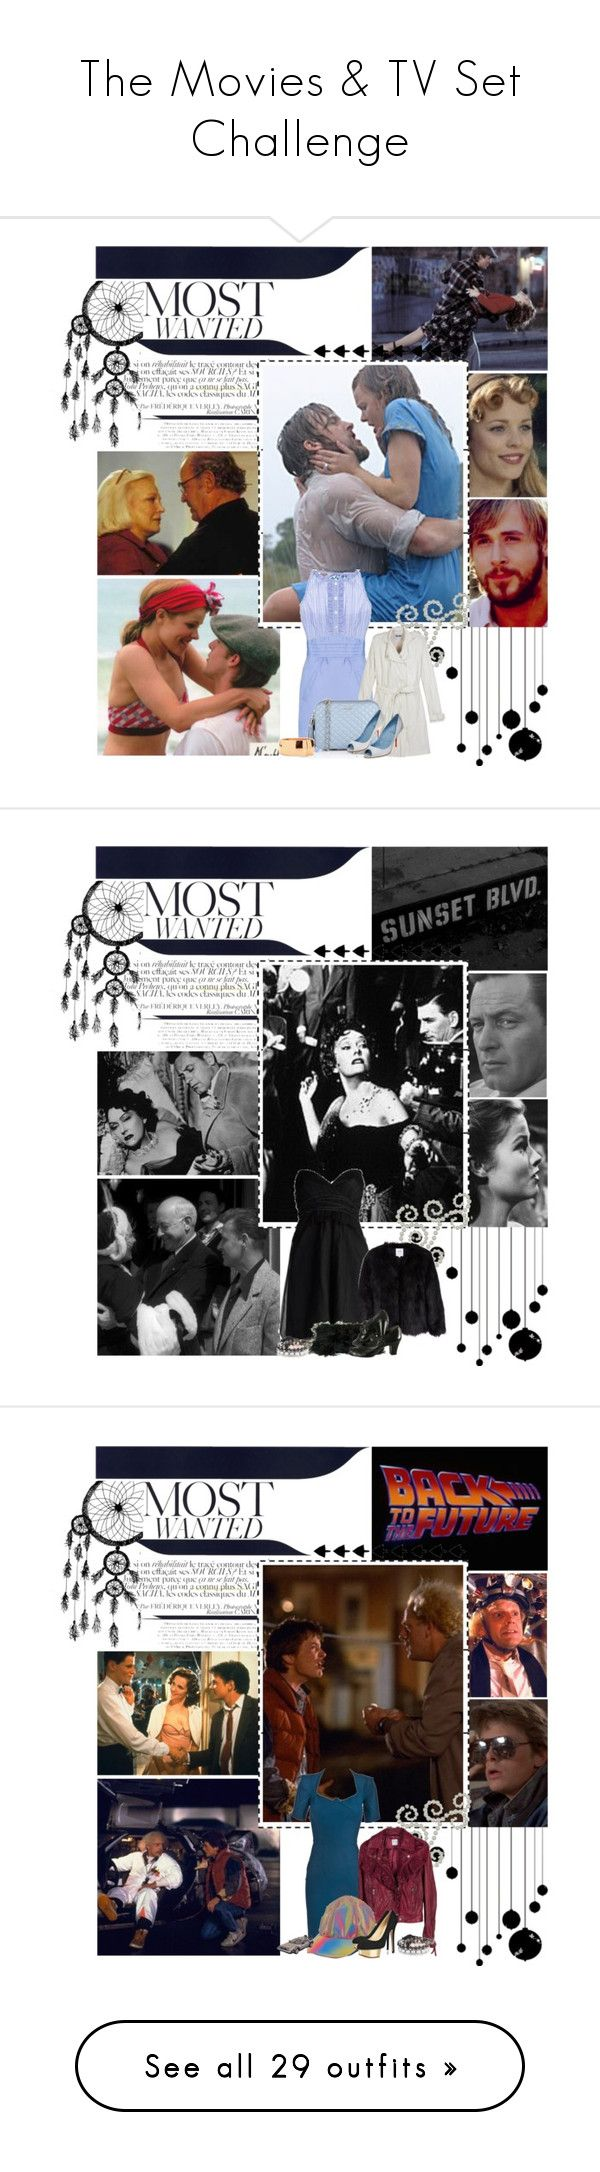 """""""The Movies & TV Set Challenge"""" by miss-kubelik ❤ liked on Polyvore featuring the notebook, the movies & tv set challenge, sunset blvd, back to the future, the usual suspects, bonnie & clyde, the silence of the lambs, susan dey, david cassidy and the sting"""